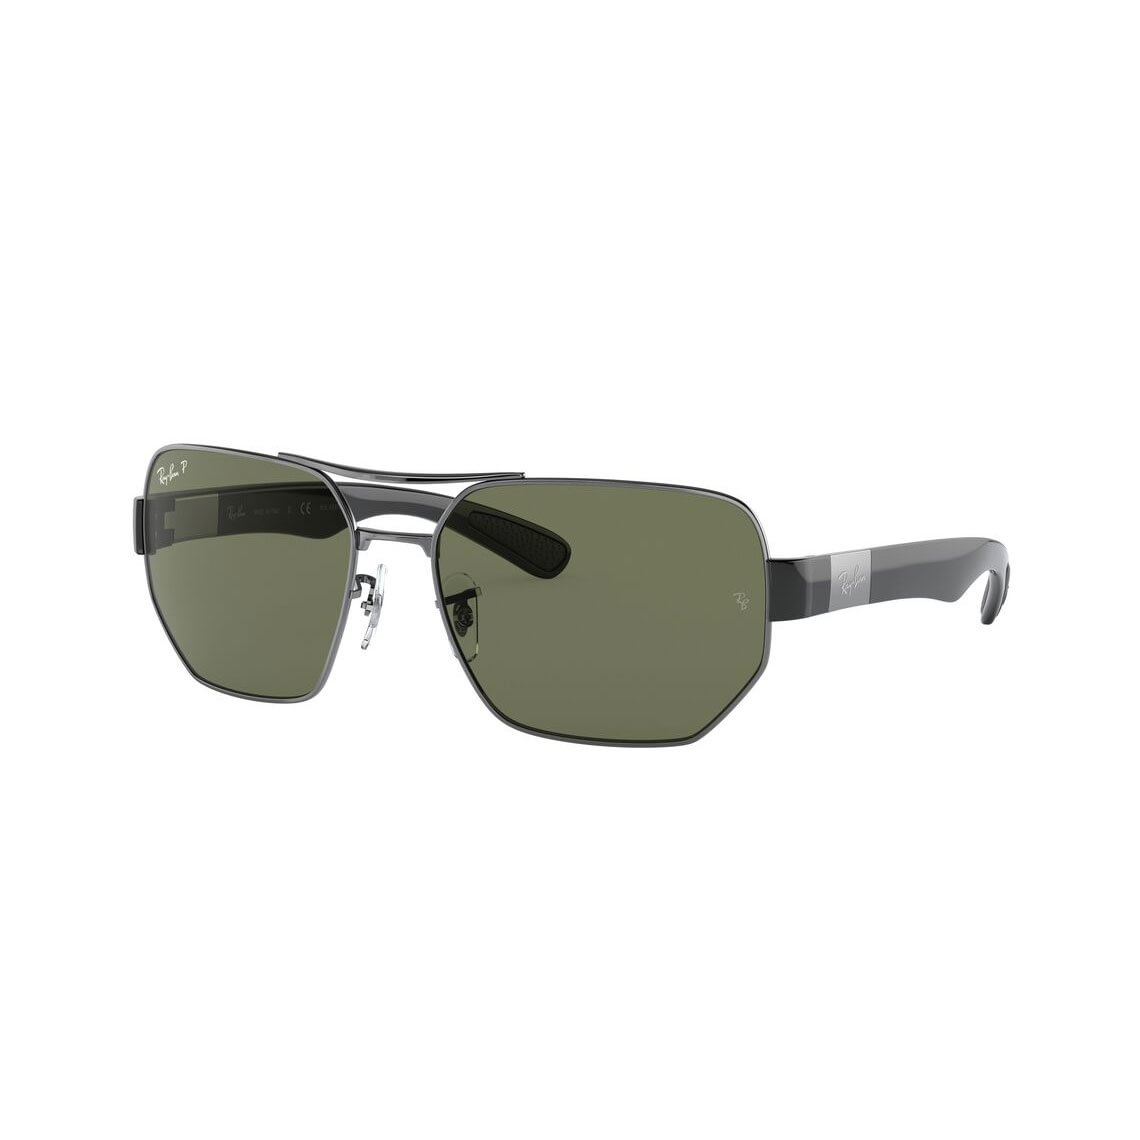 Ray-Ban RB3672 004/9A 6017